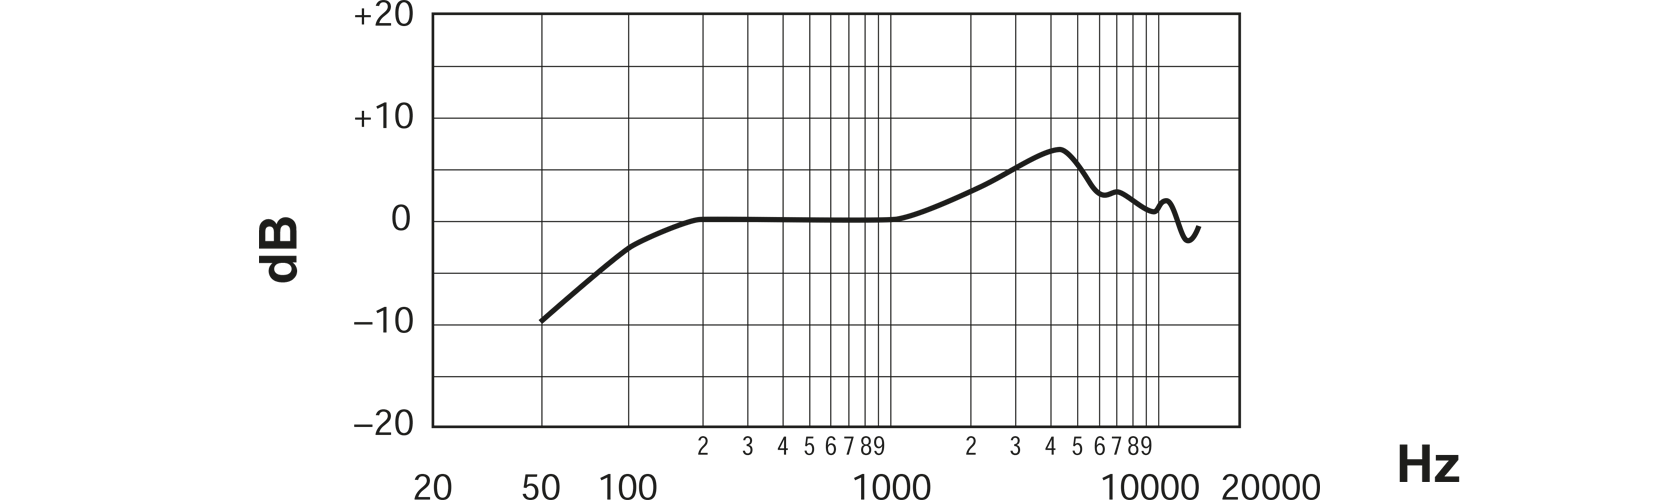 Shure SV100 Vocal Microphone Frequency Response Curve Image